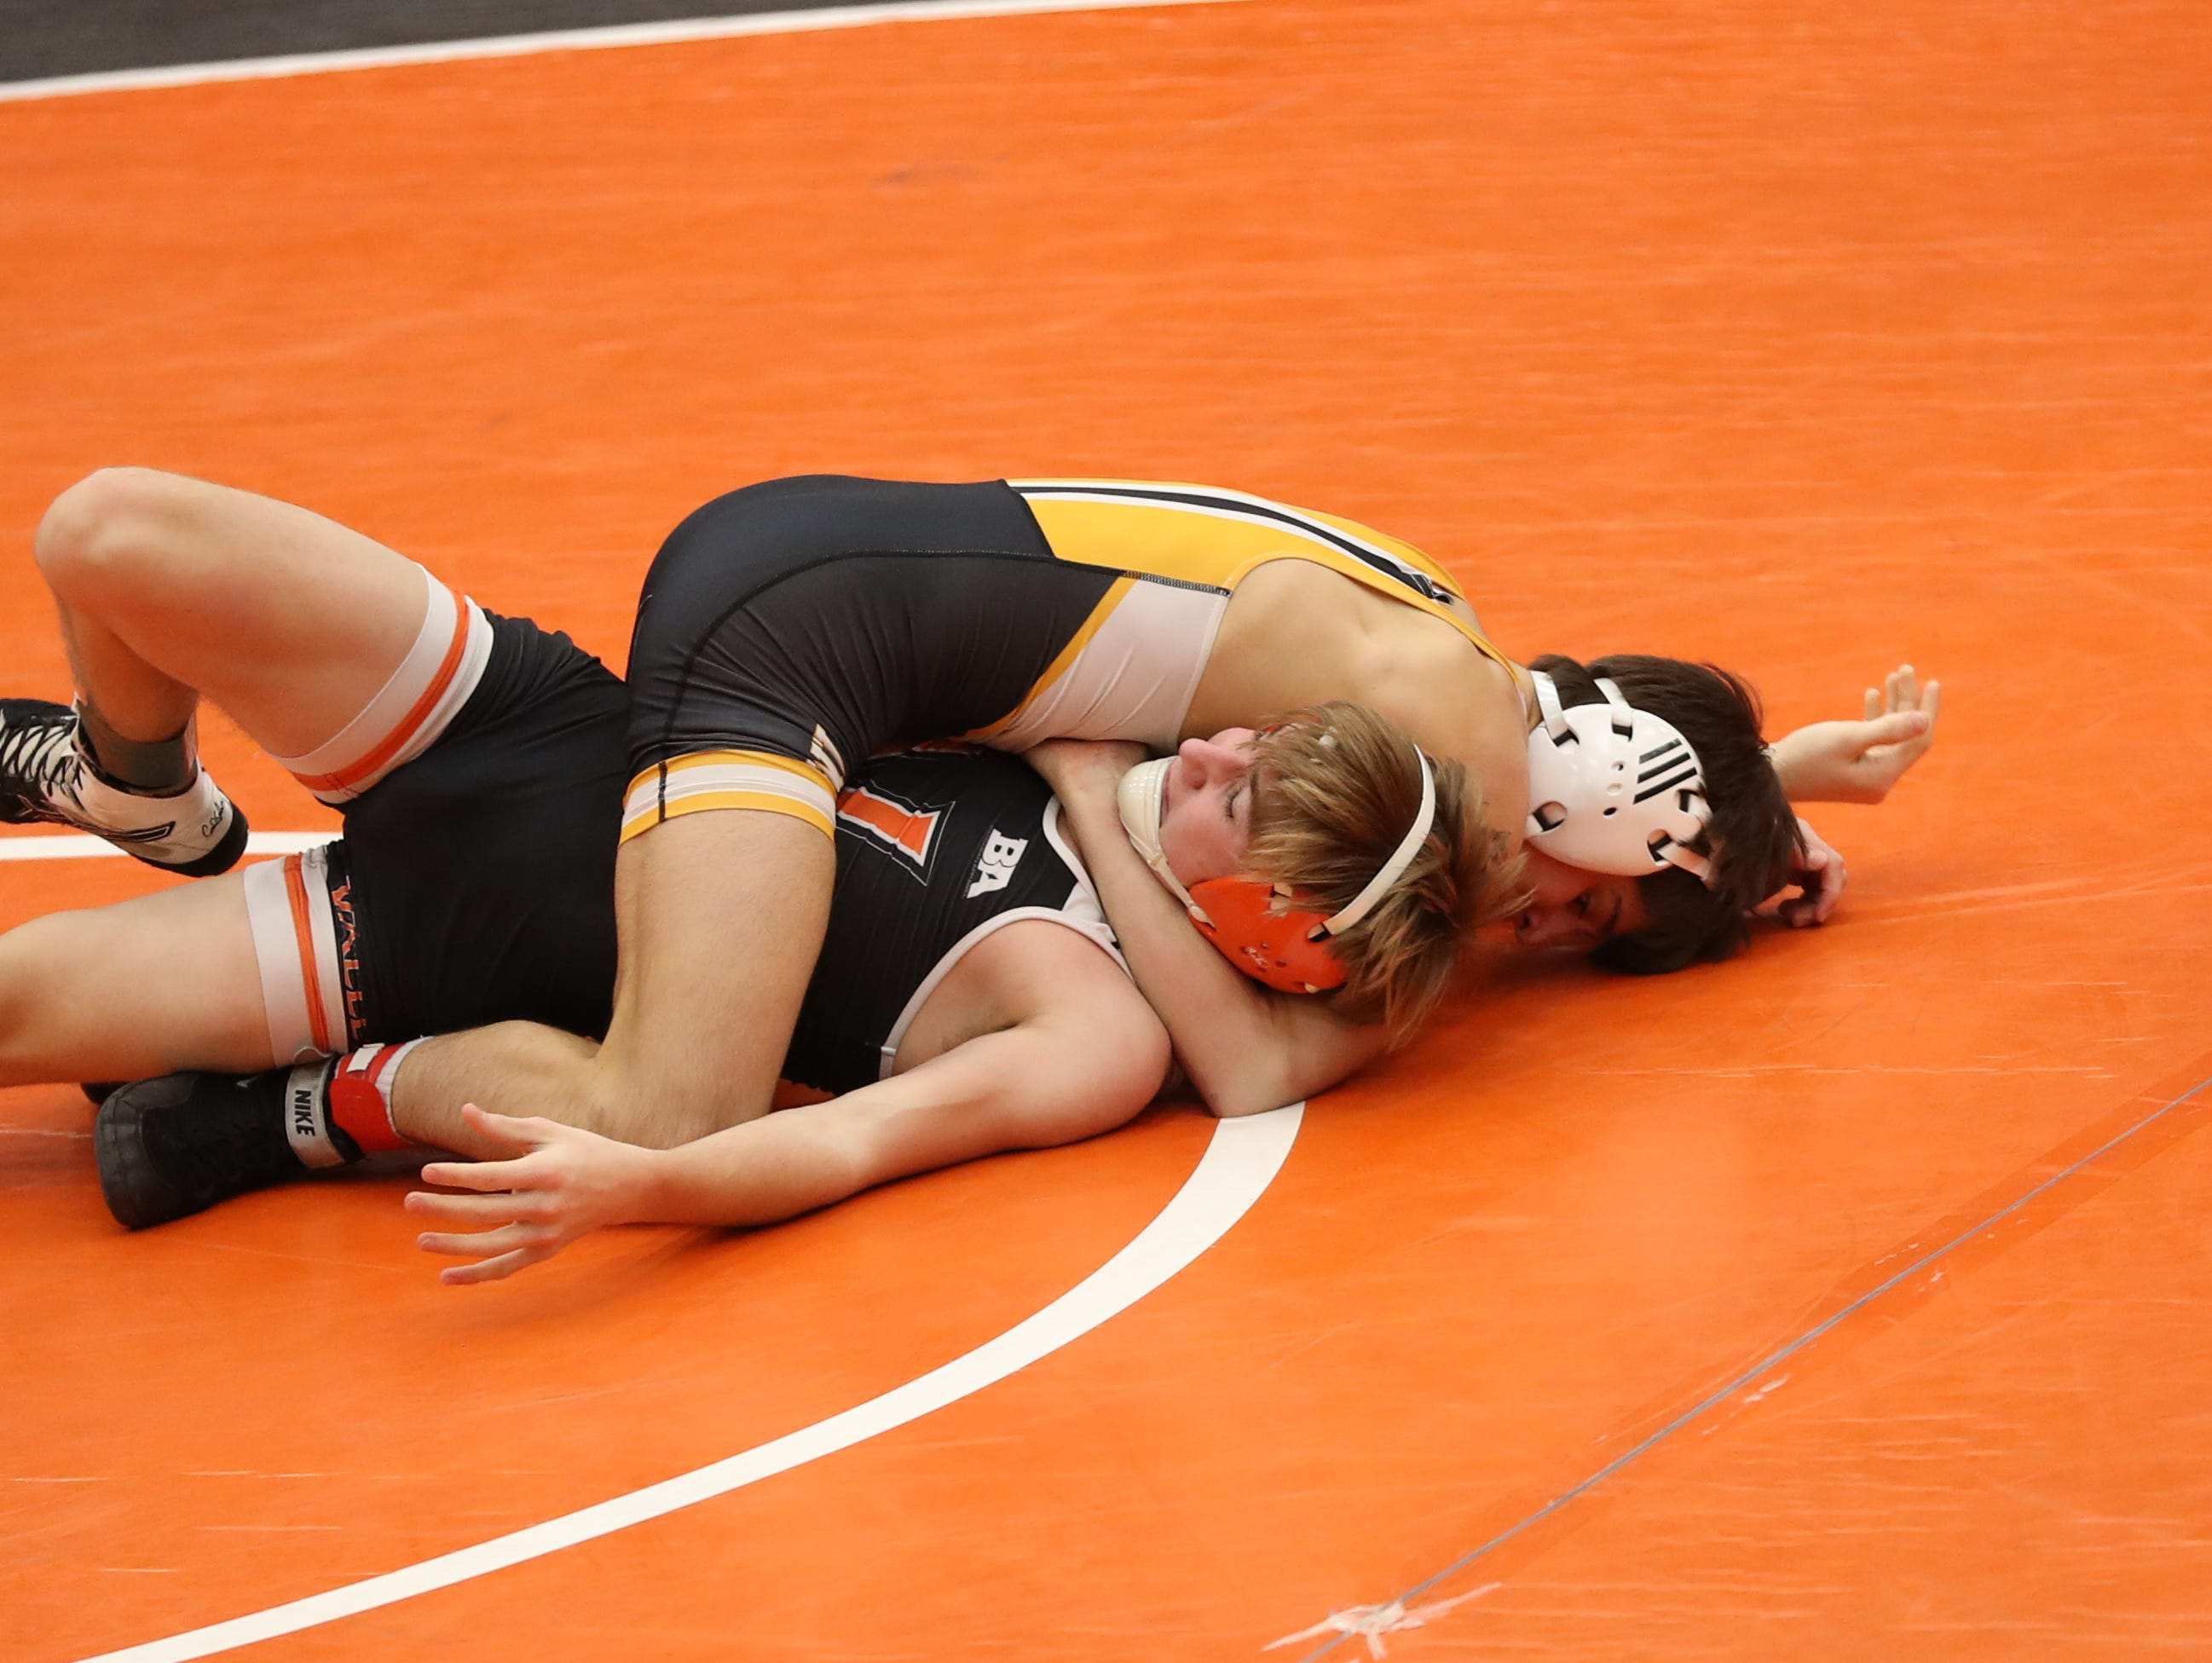 Southeast Polk's Joel Jesuroga pins Valley's Aidan Feldman at Valley High School in West Des Moines on Jan. 17, 2019. The Rams beat the Tigers 53 to 20.